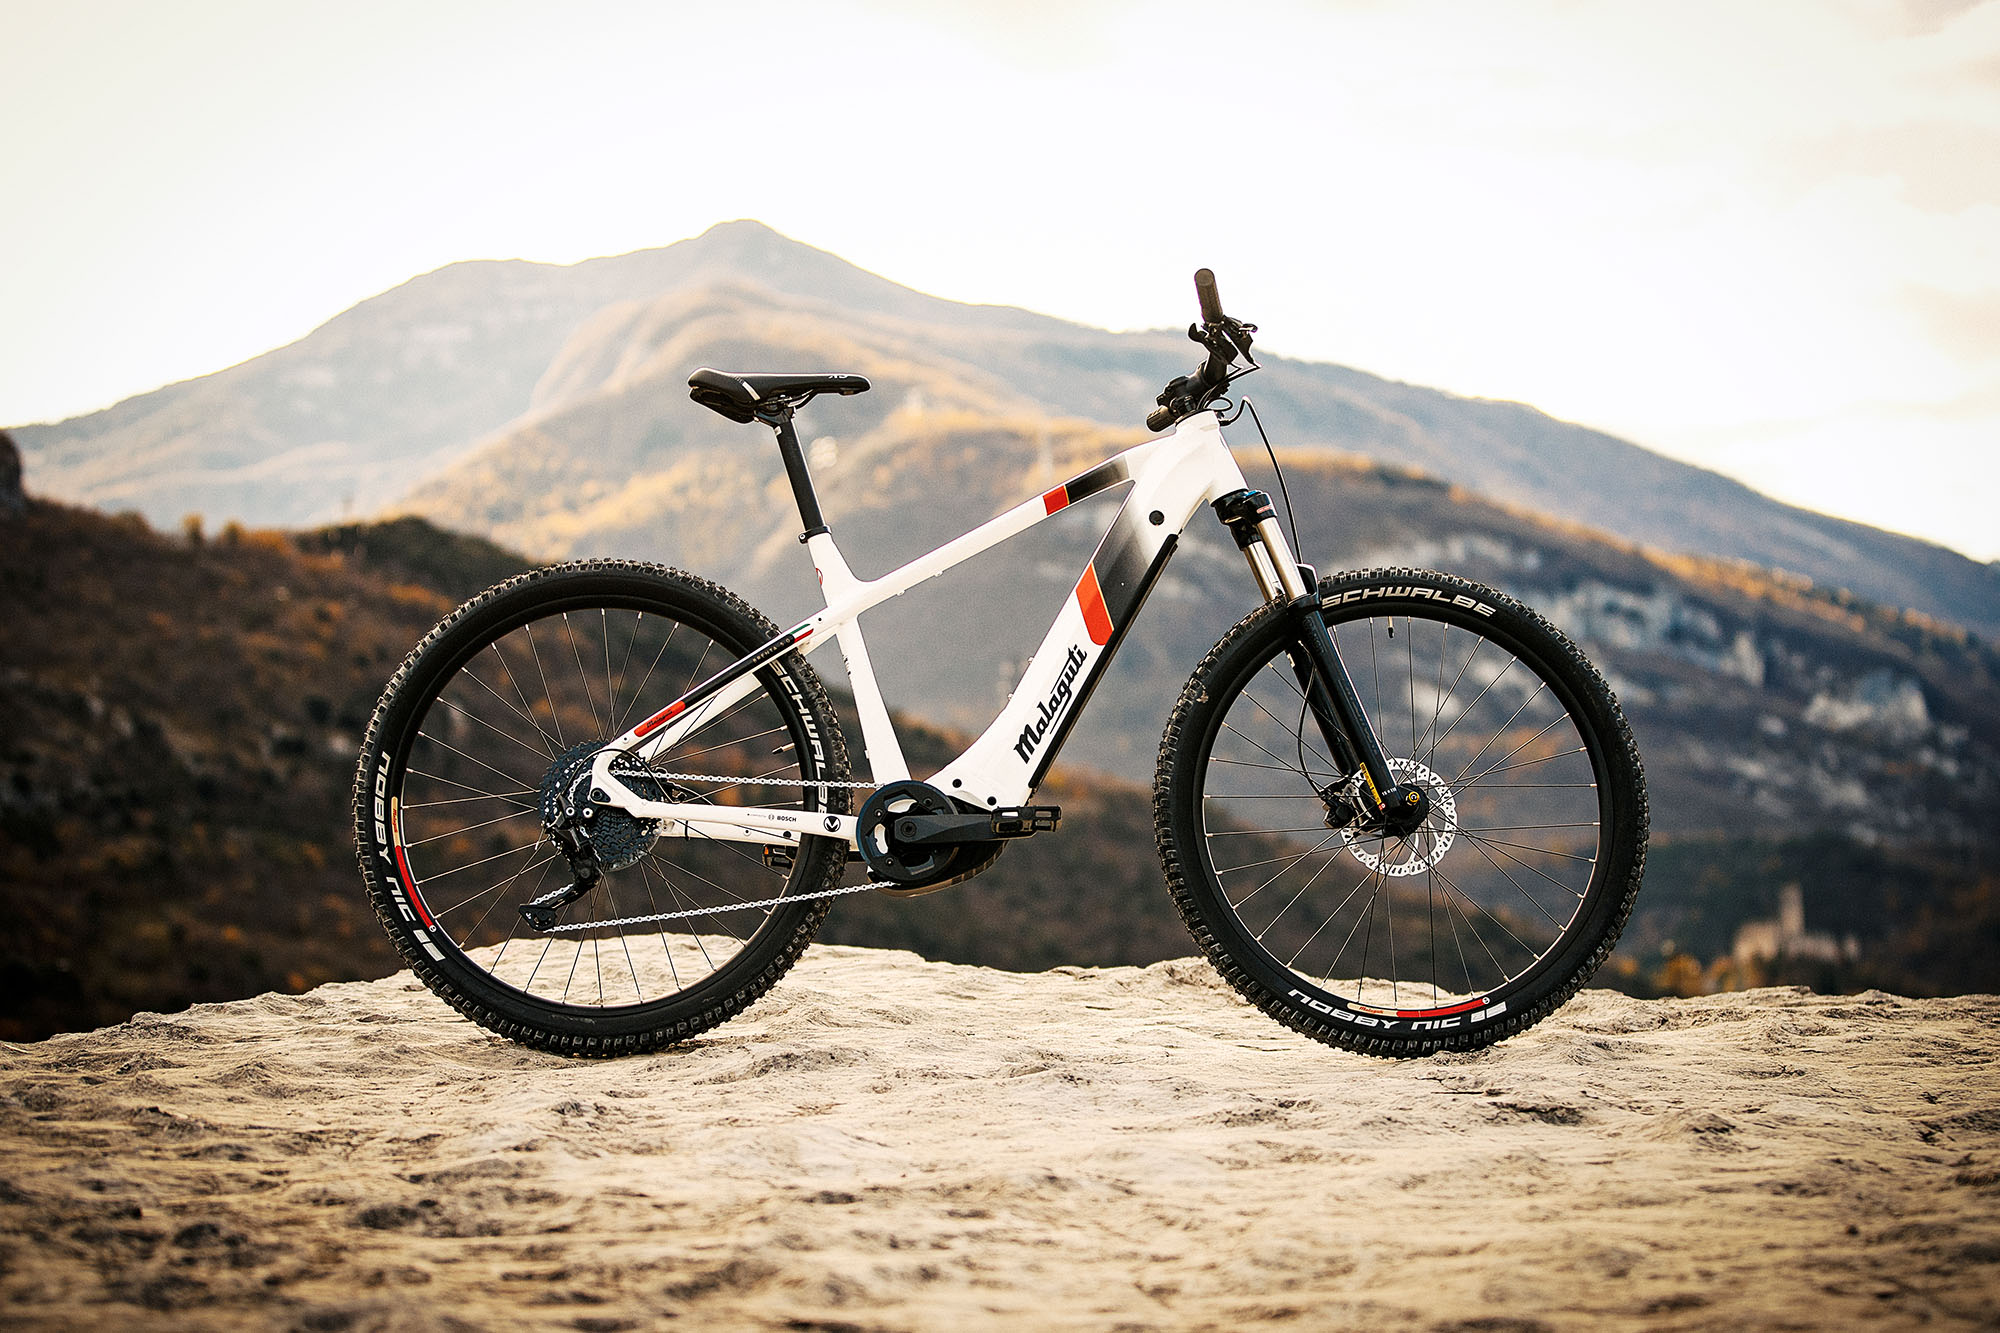 https://malaguti-bicycles.com/wp-content/uploads/sites/2/2020/10/MALAGUTI20_BRENTA_NORTHGARDA_byADL-4013.jpg